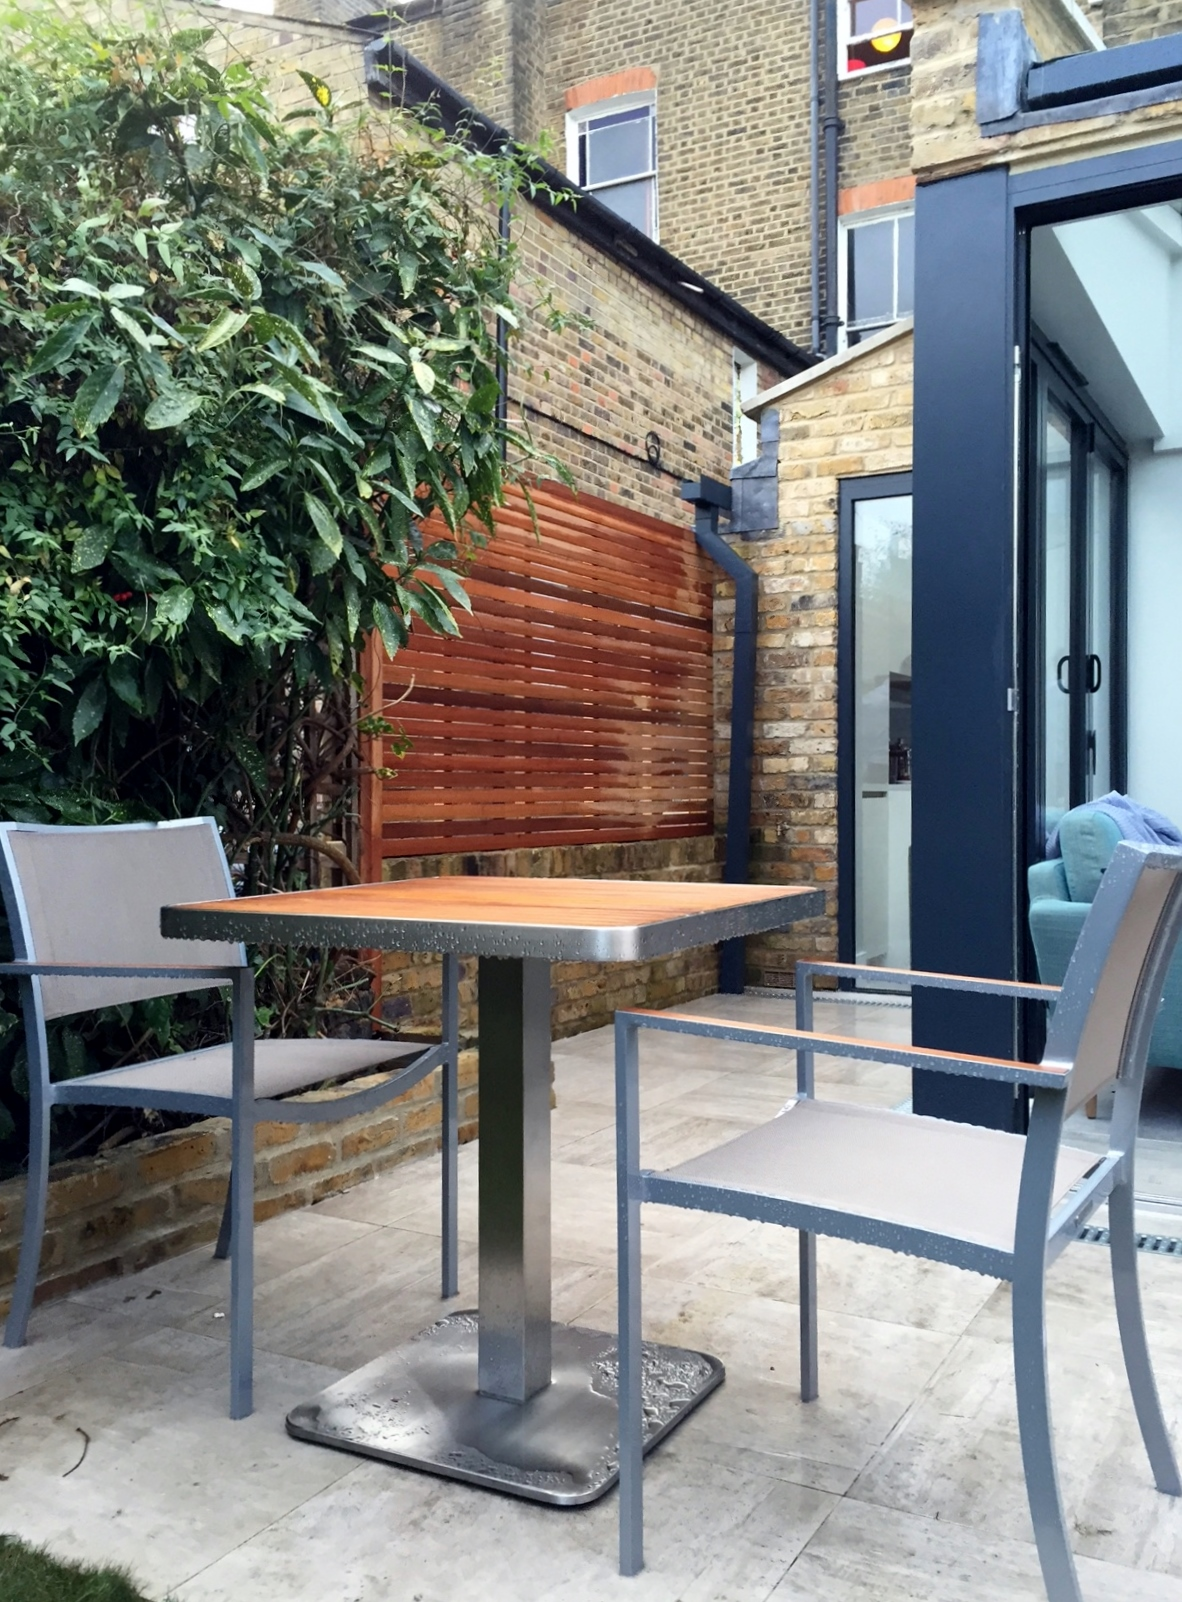 london garden design cermaic tile patio wall garden screen trellis fence slatted horizontal london brixton